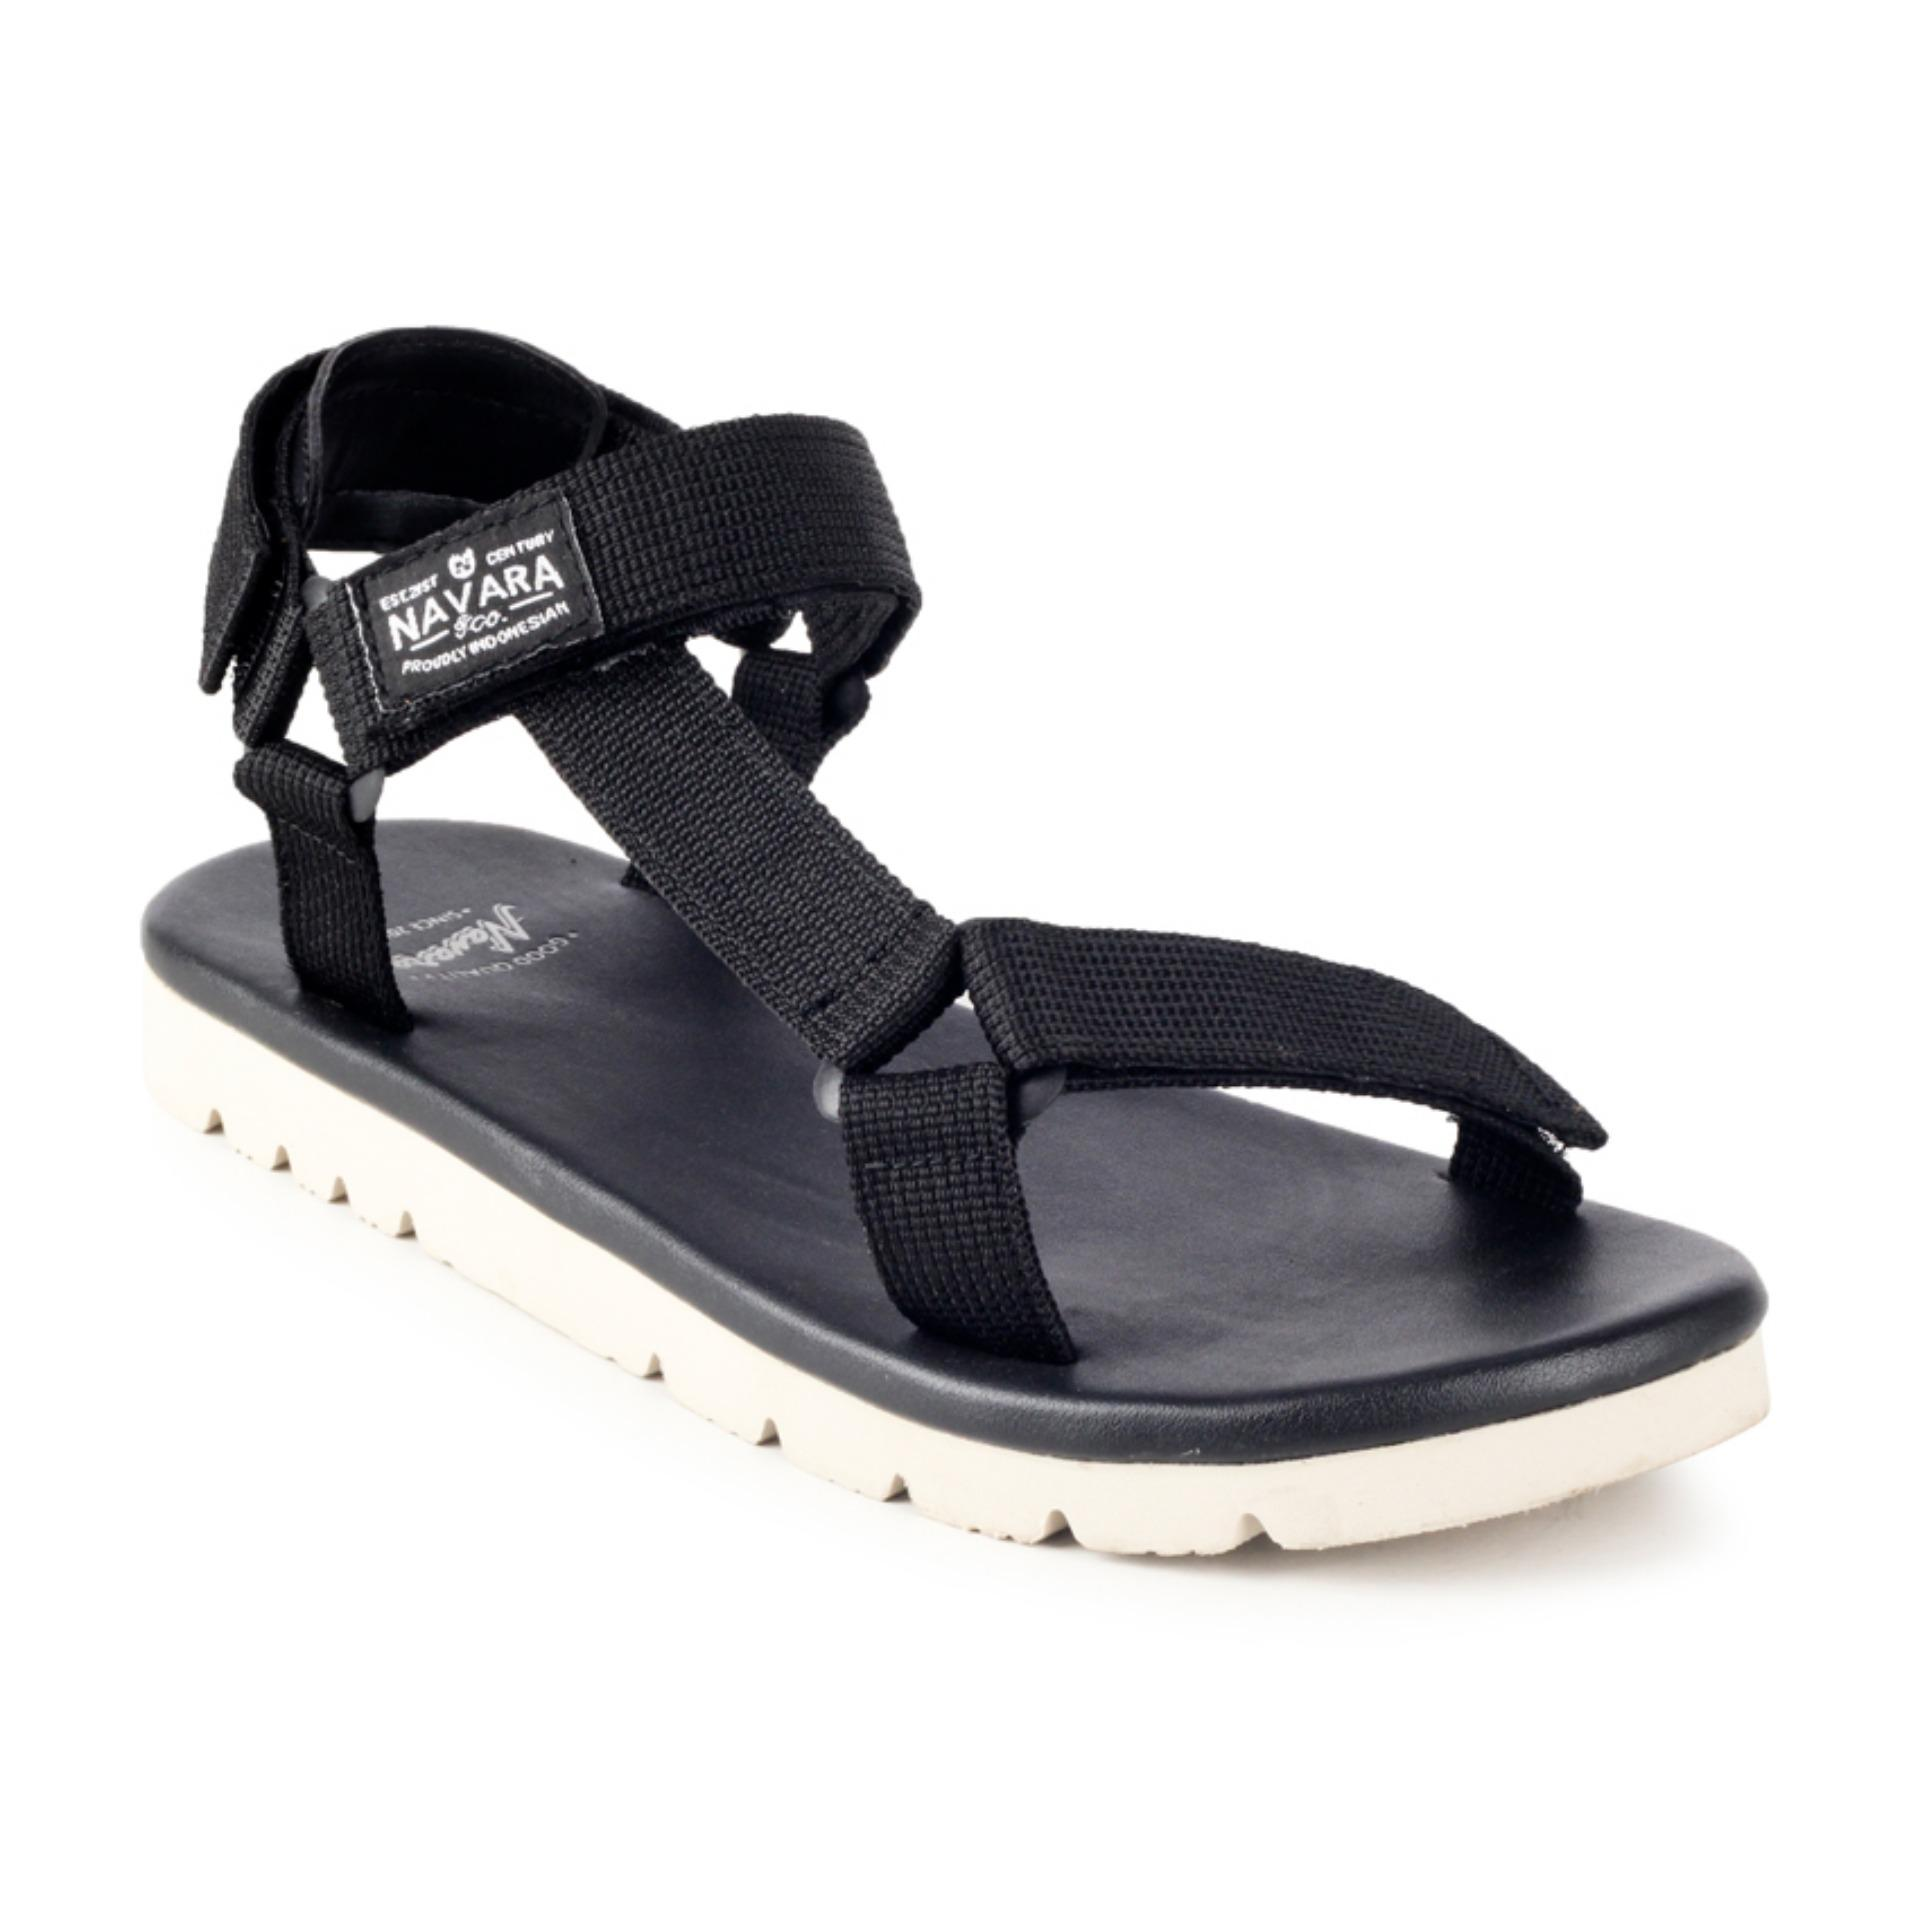 Jual Navara Sandals Clark Black Original